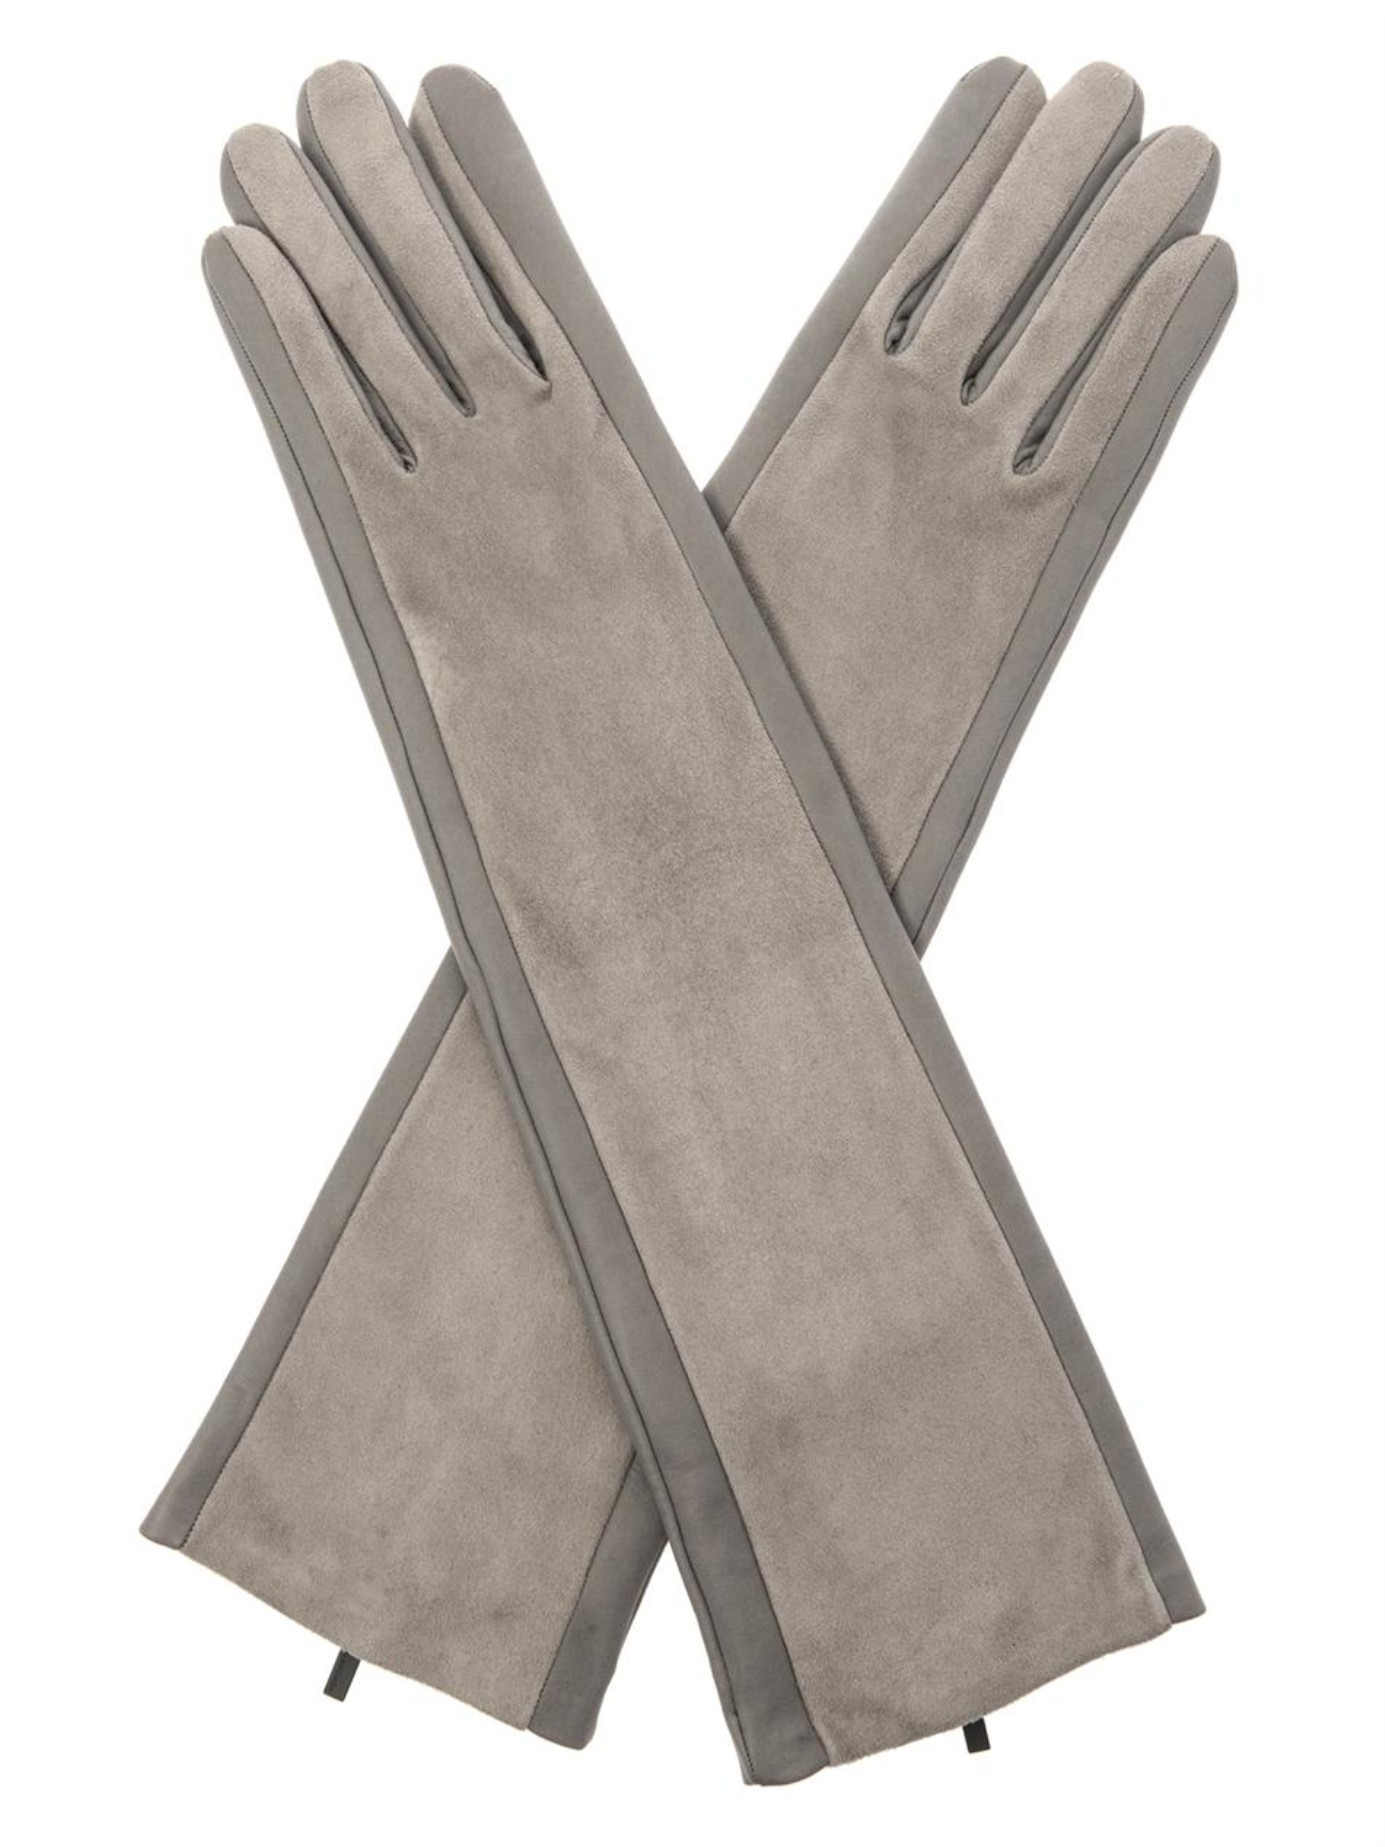 Mens leather gloves grey -  Balenciaga Leather And Suede Long Gloves In Gray Lyst